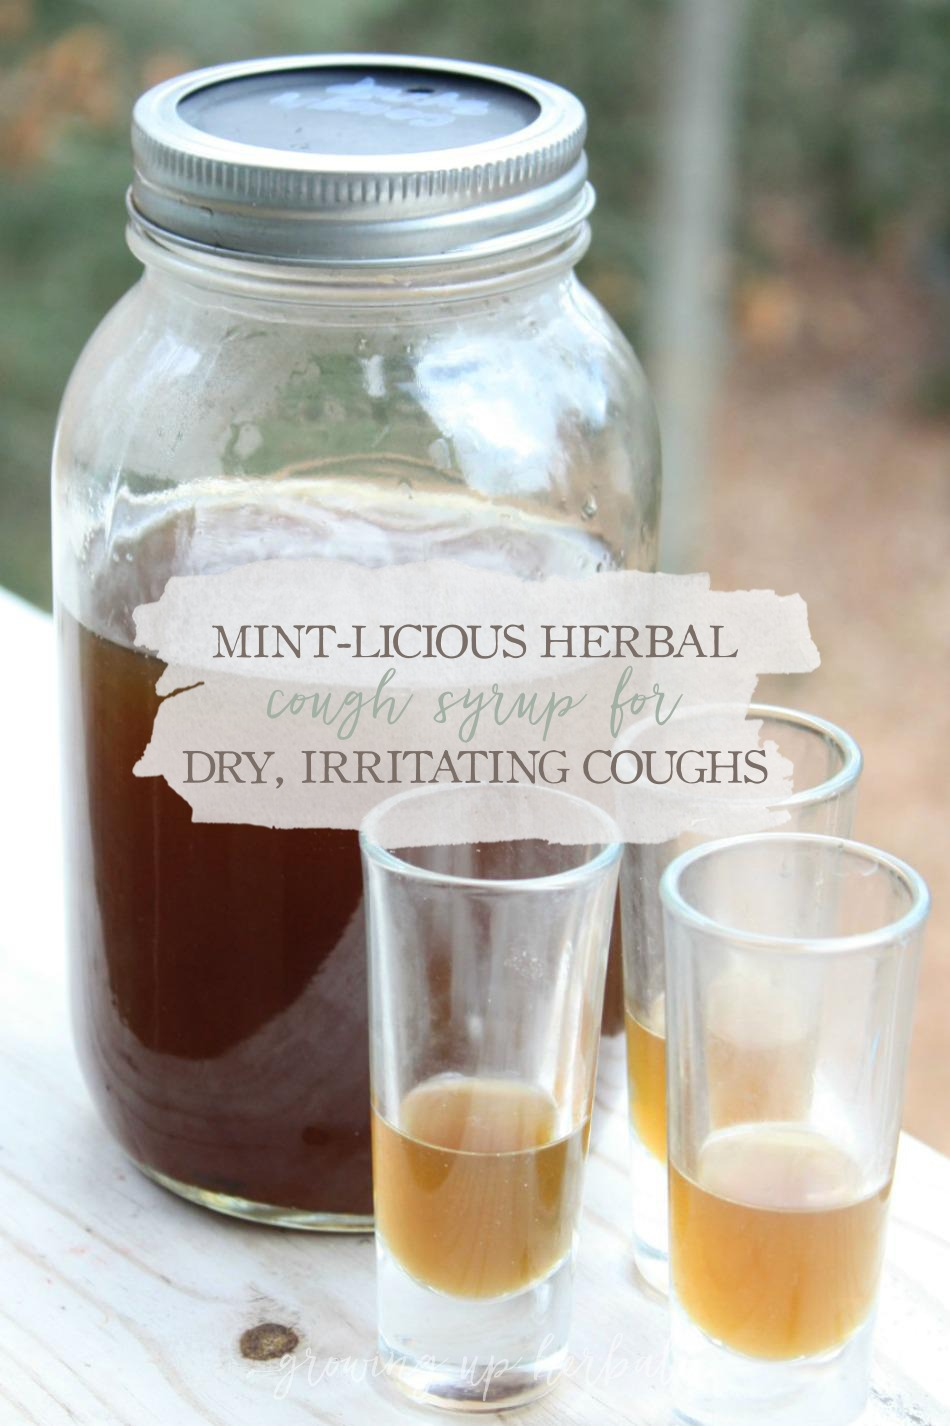 Mint-licious Herbal Cough Syrup Recipe | Growing Up Herbal | A minty herbal cough syrup for dry, irritating coughs.